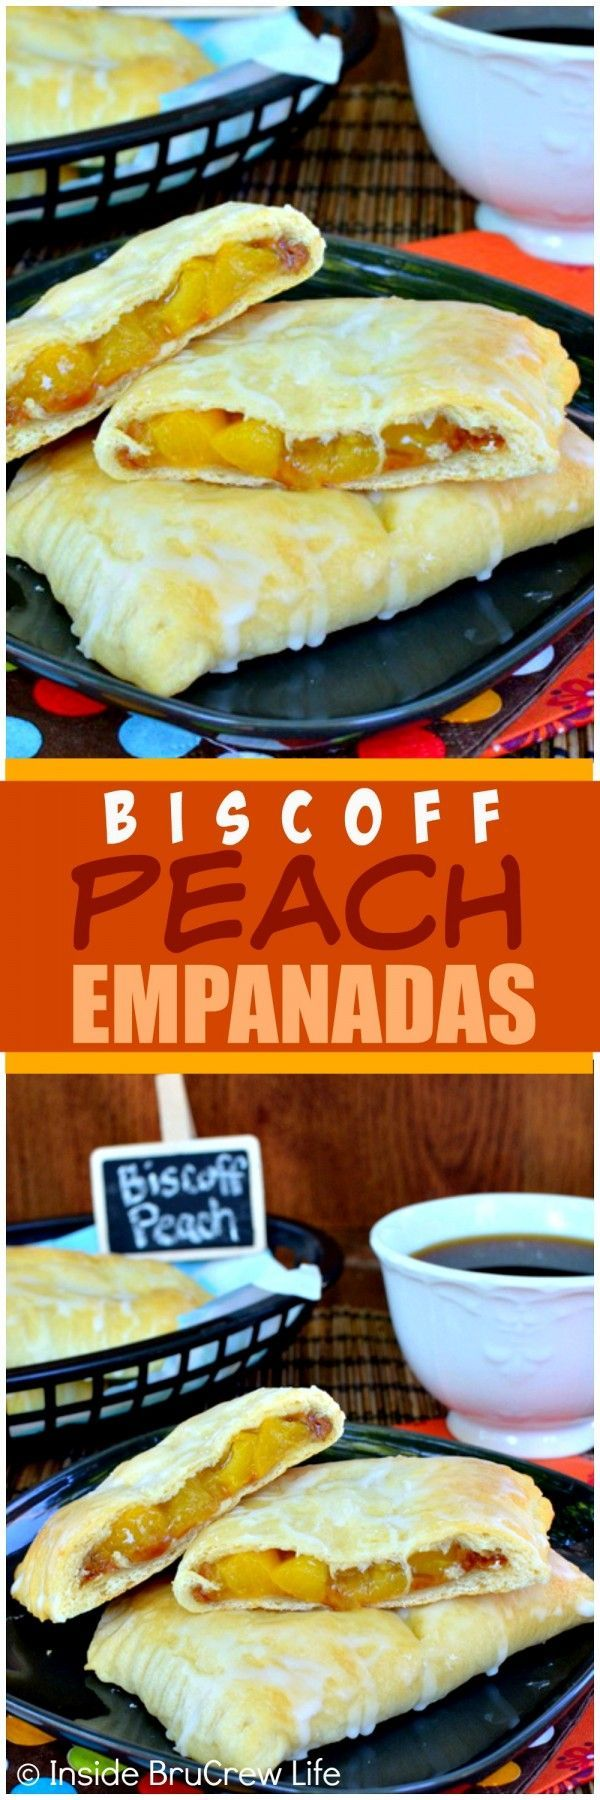 Biscoff Peach Empanadas - easy little pies filled with cookie butter and peach pie filling!  Awesome dessert recipe!